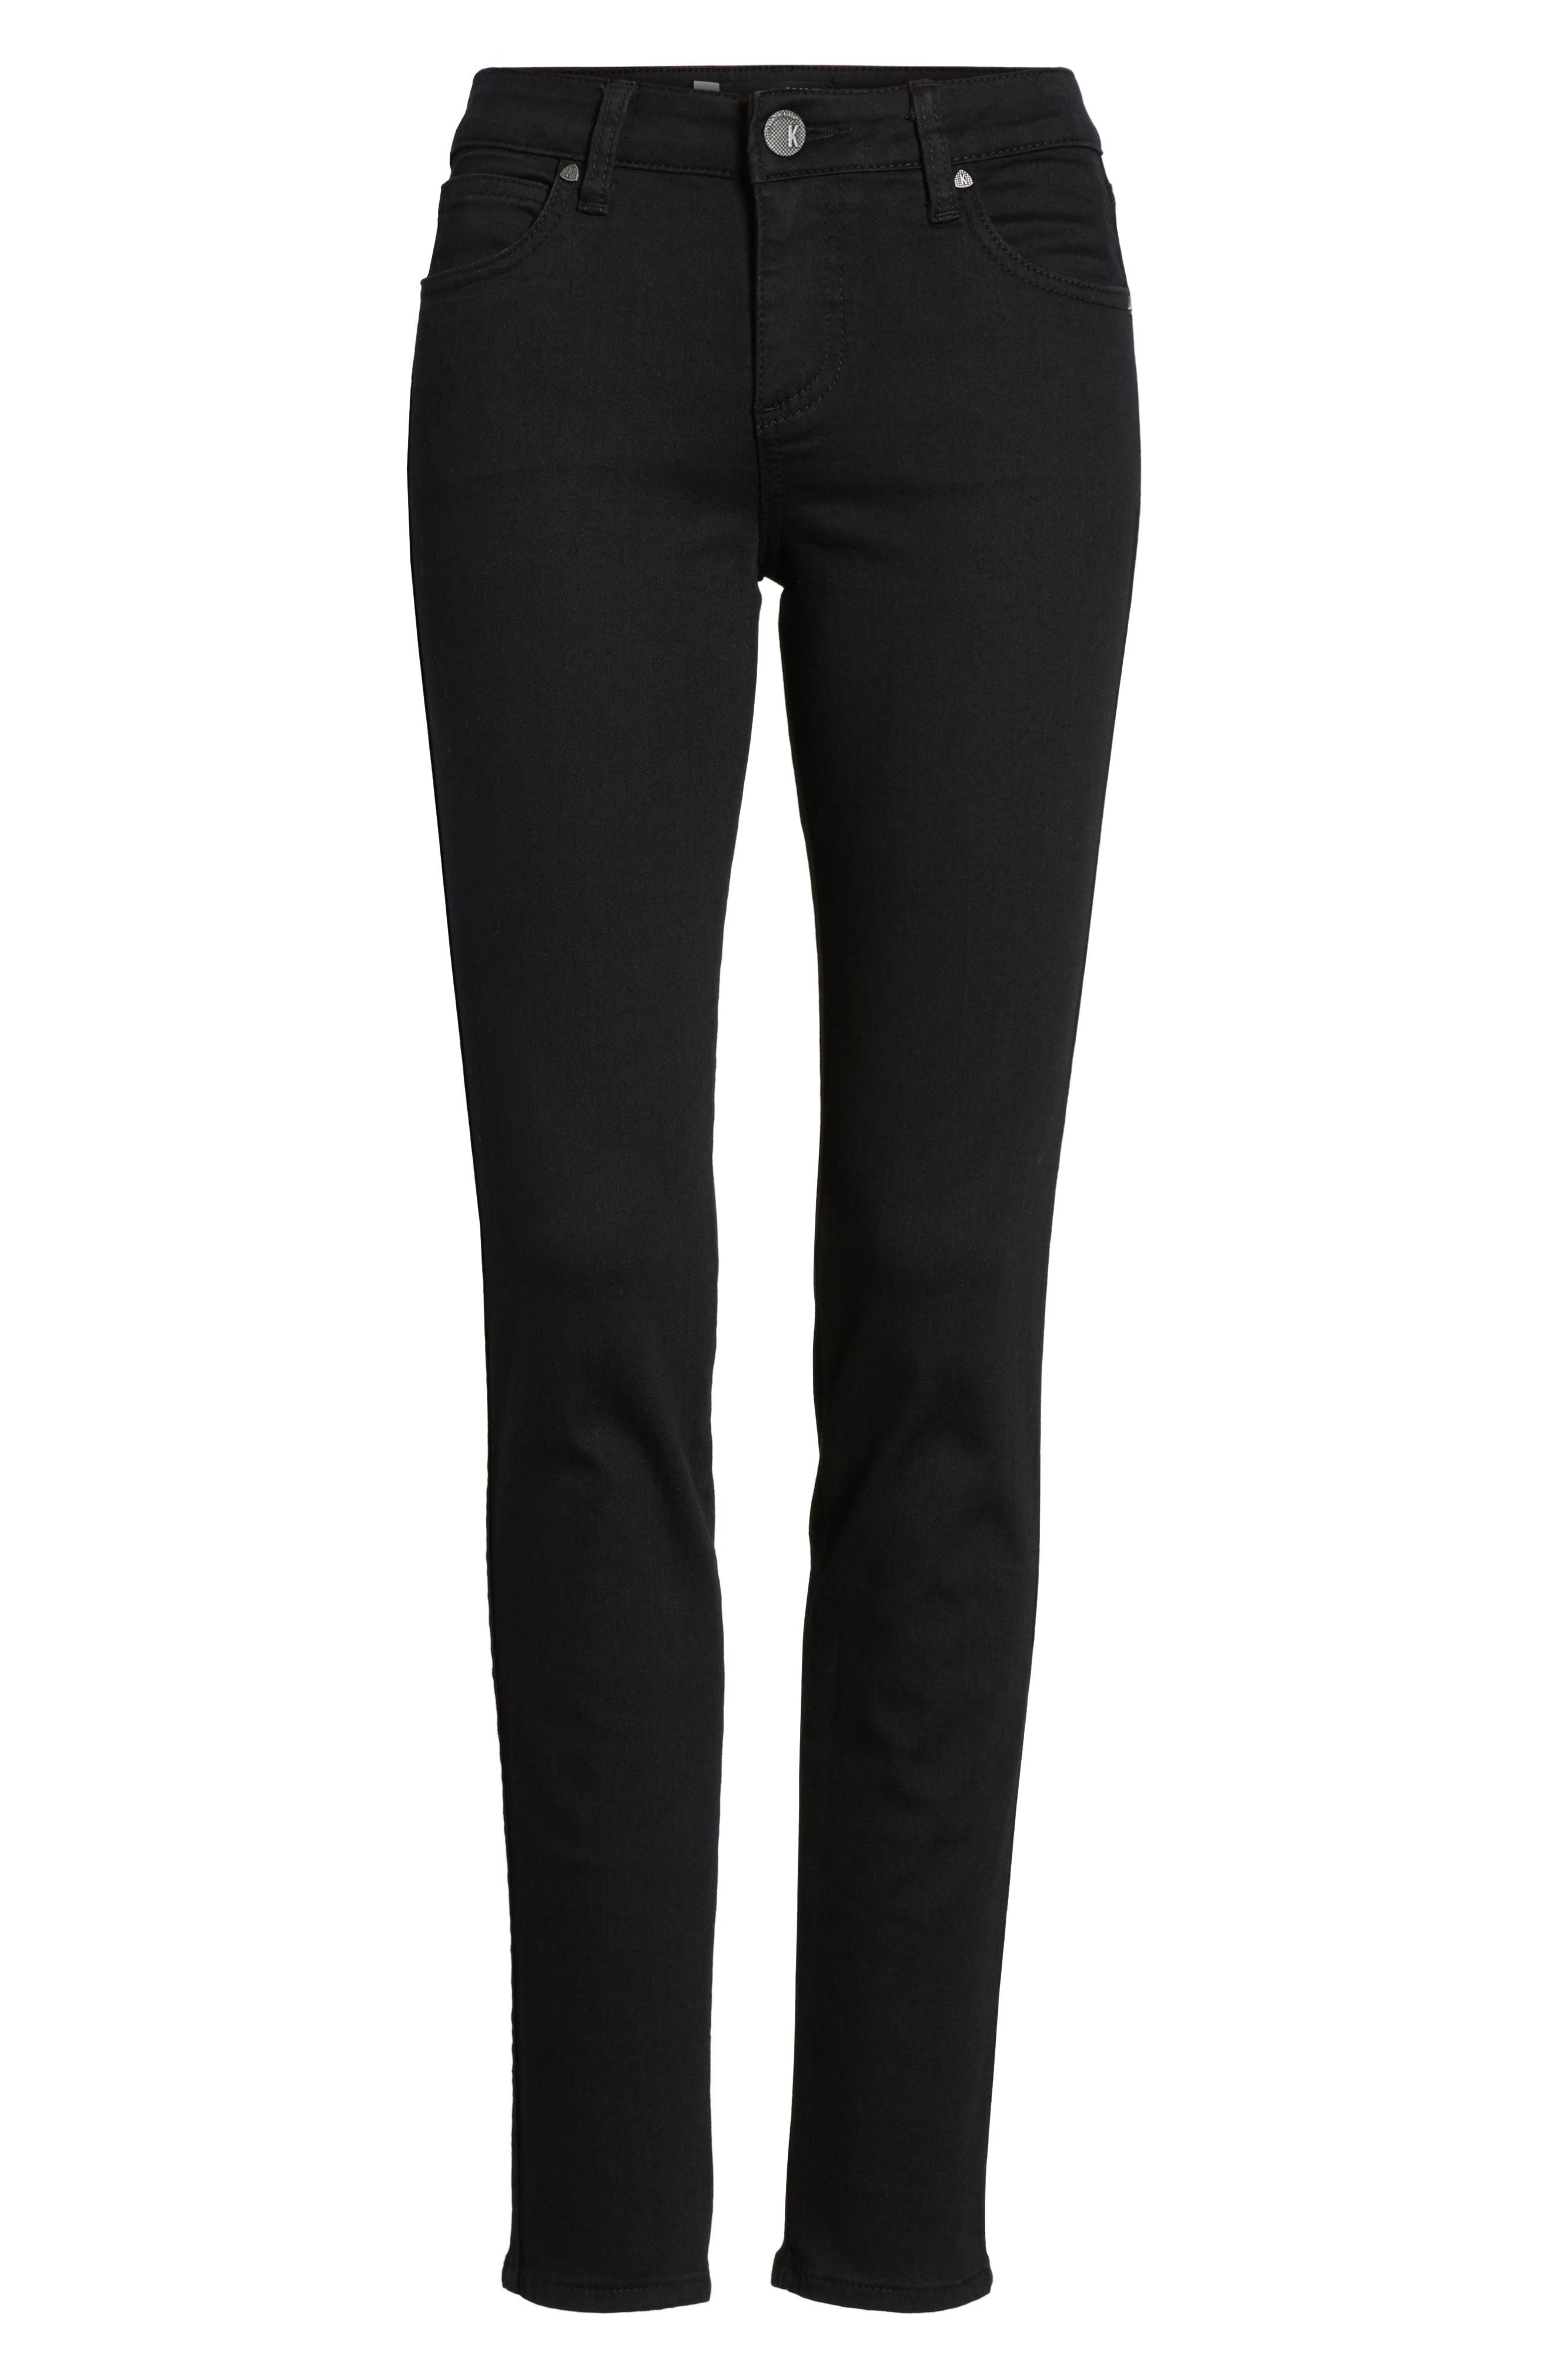 Diana Curvy Fit Skinny Jeans,                             Alternate thumbnail 6, color,                             002